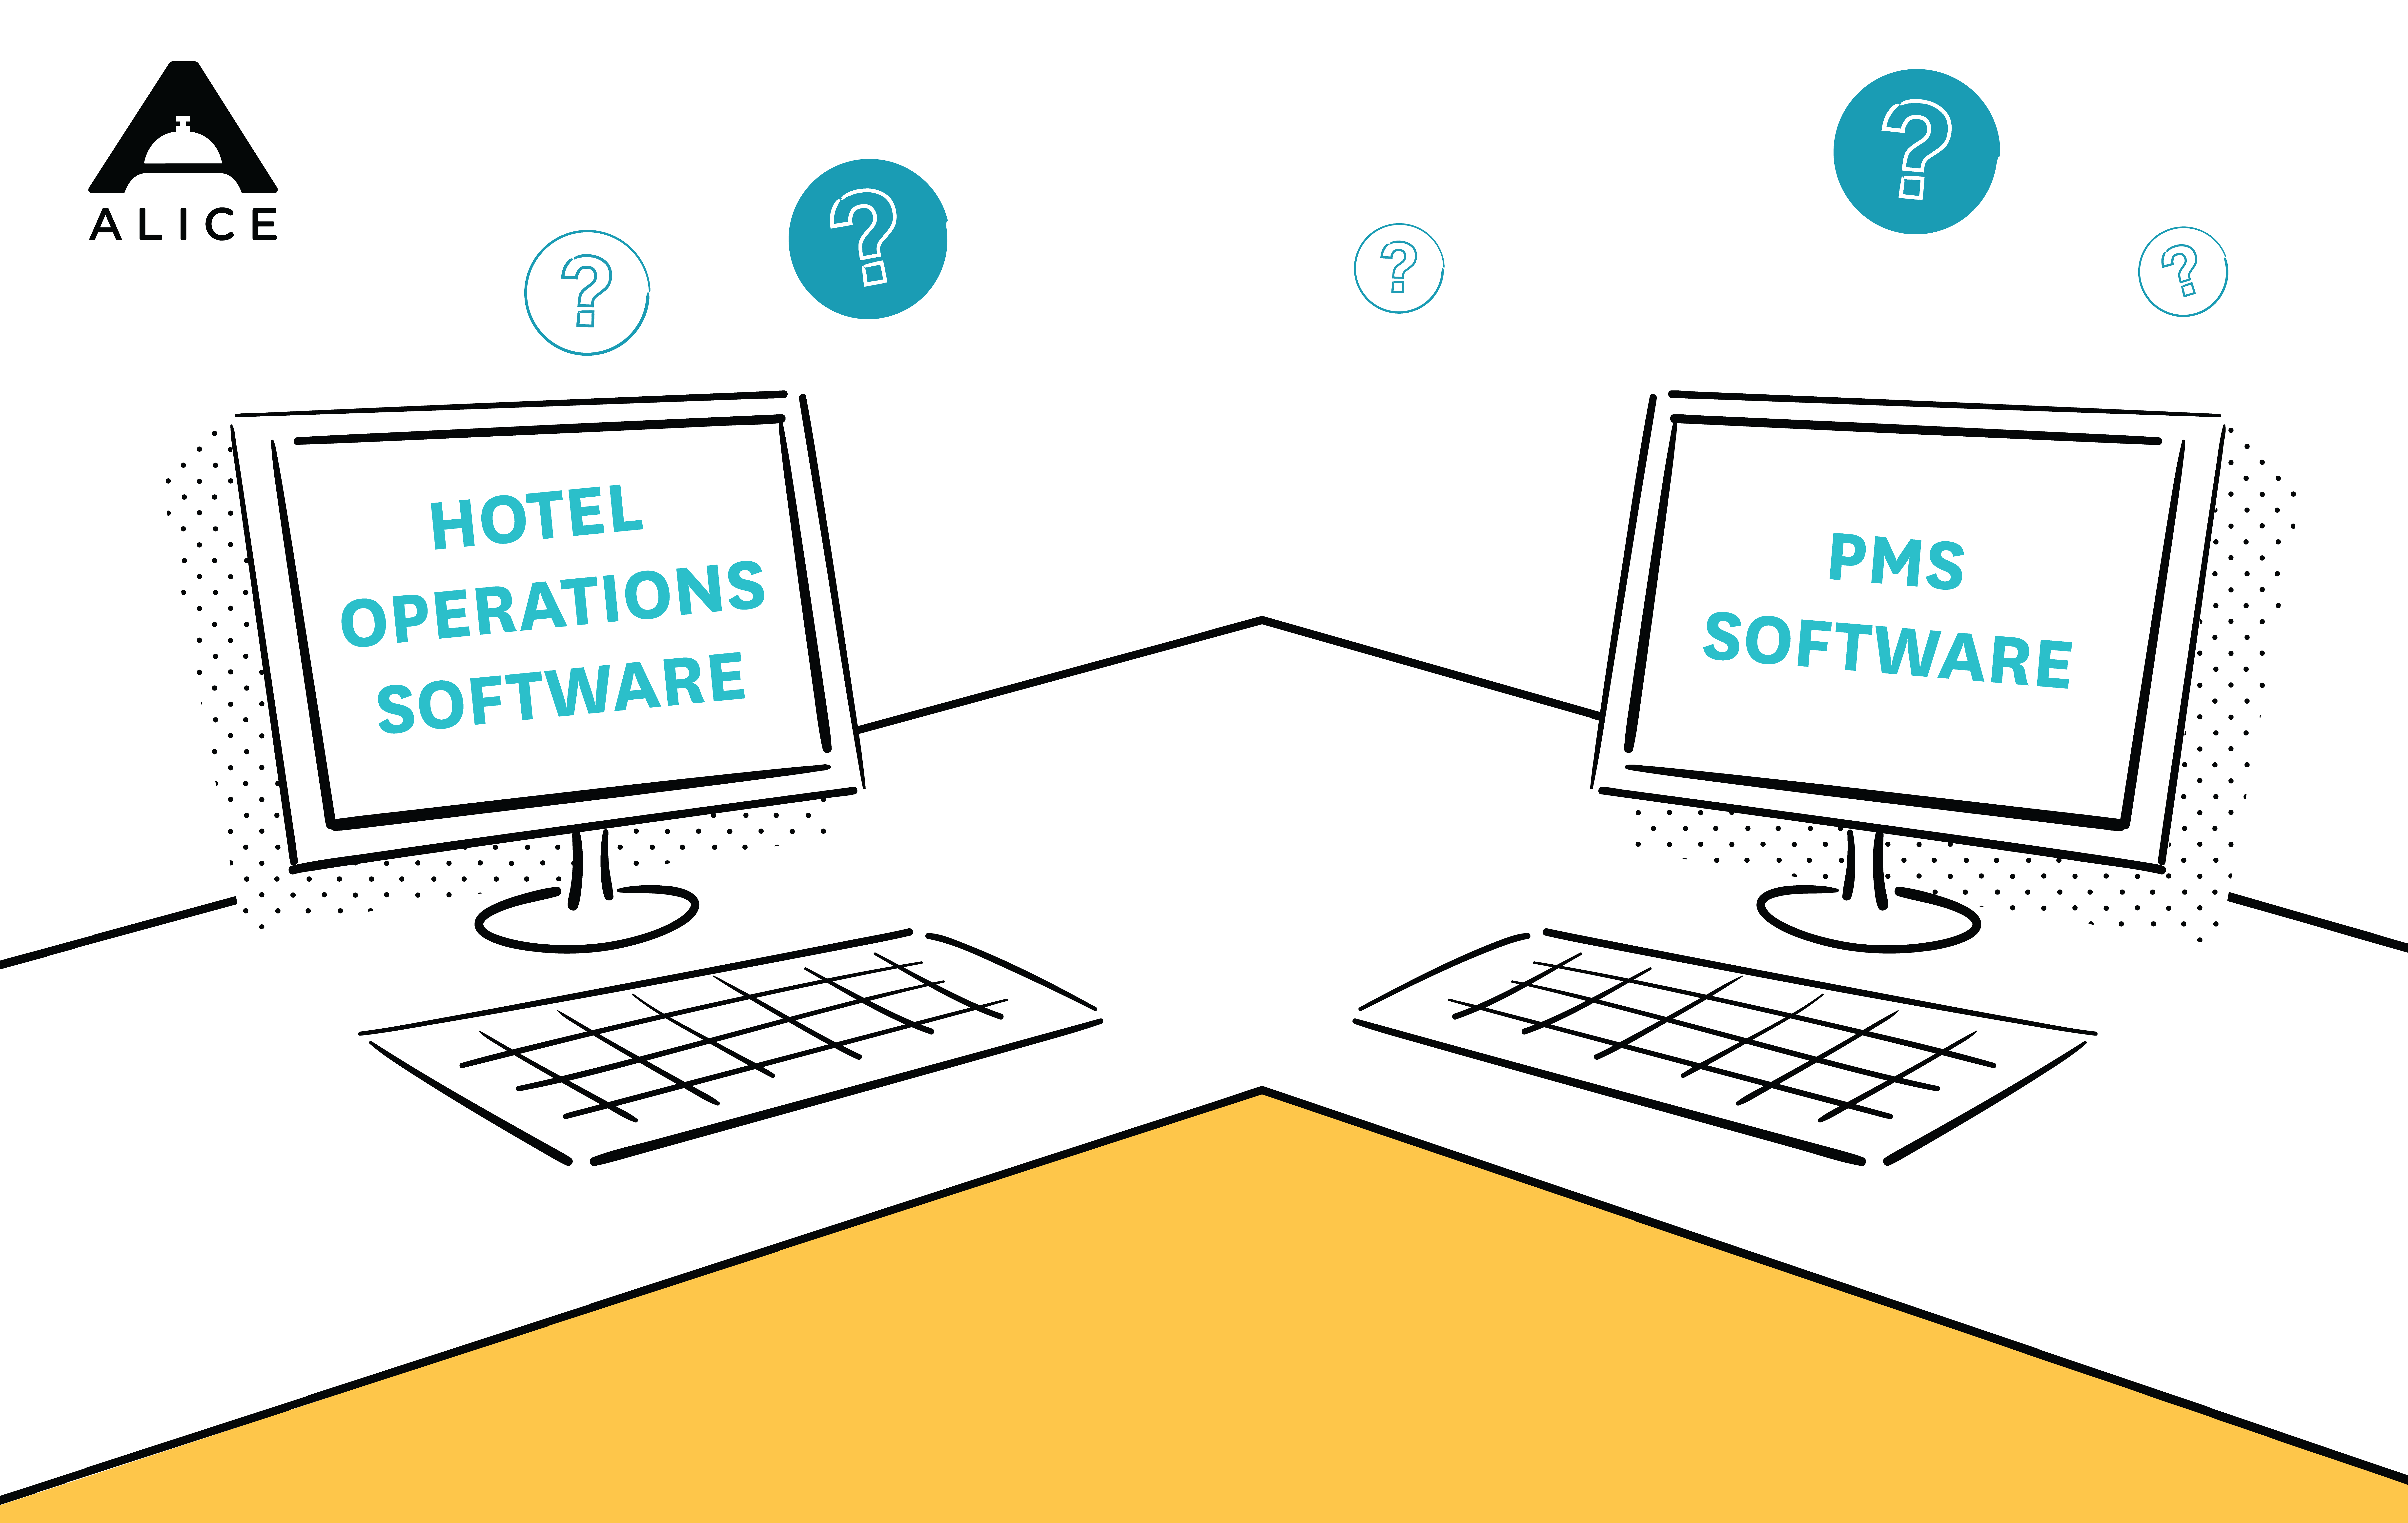 Hotel Operations Software and PMS Software